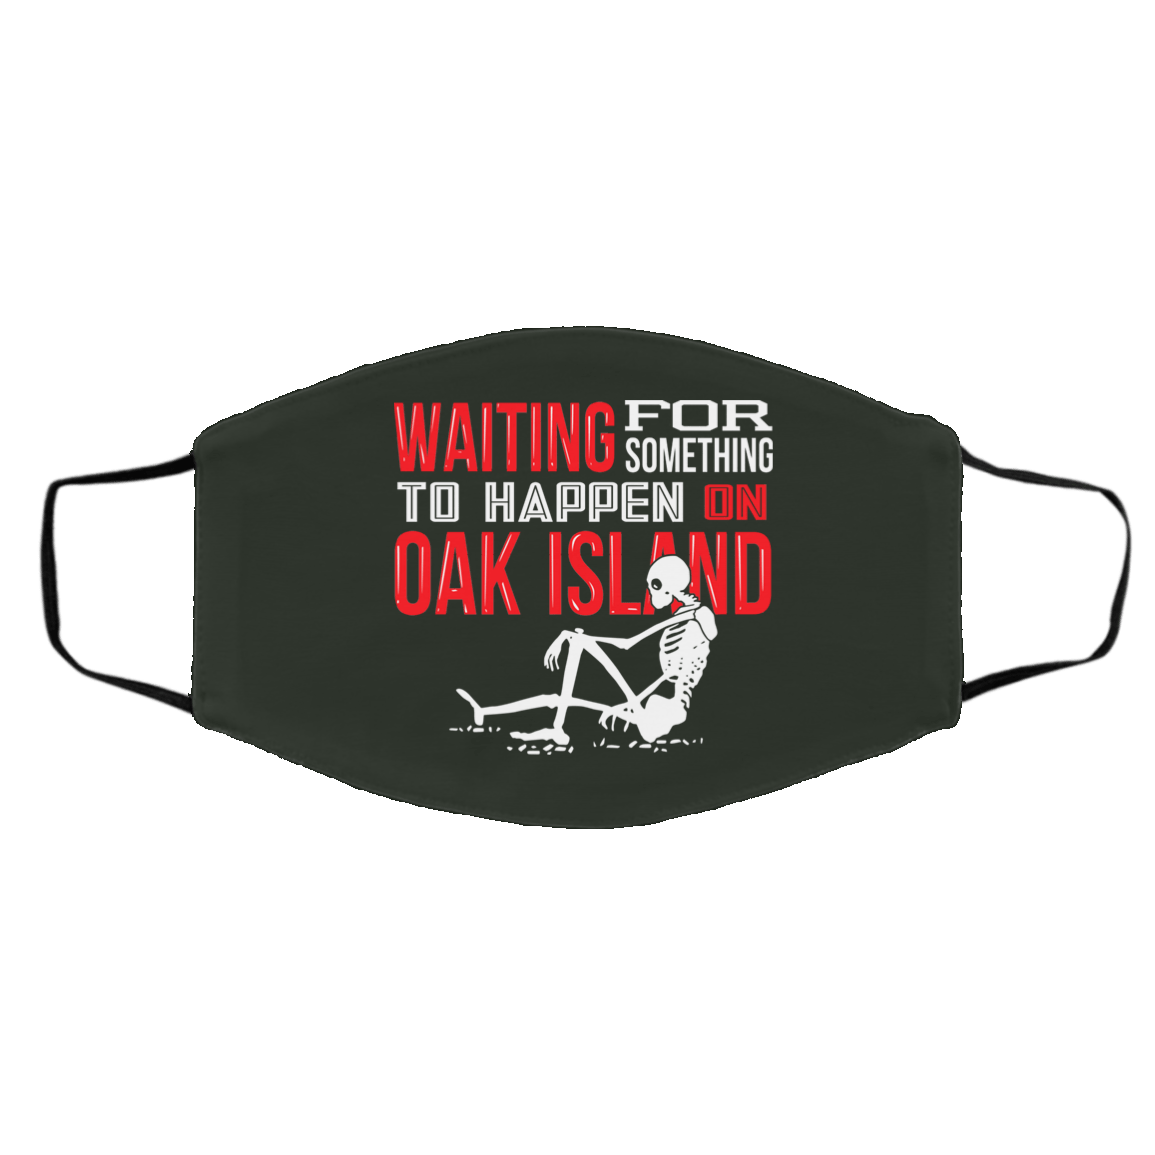 Waiting For Something To Happen On Oak Island Face Mask 1274-13177-91587533-59065 - Tee Ript